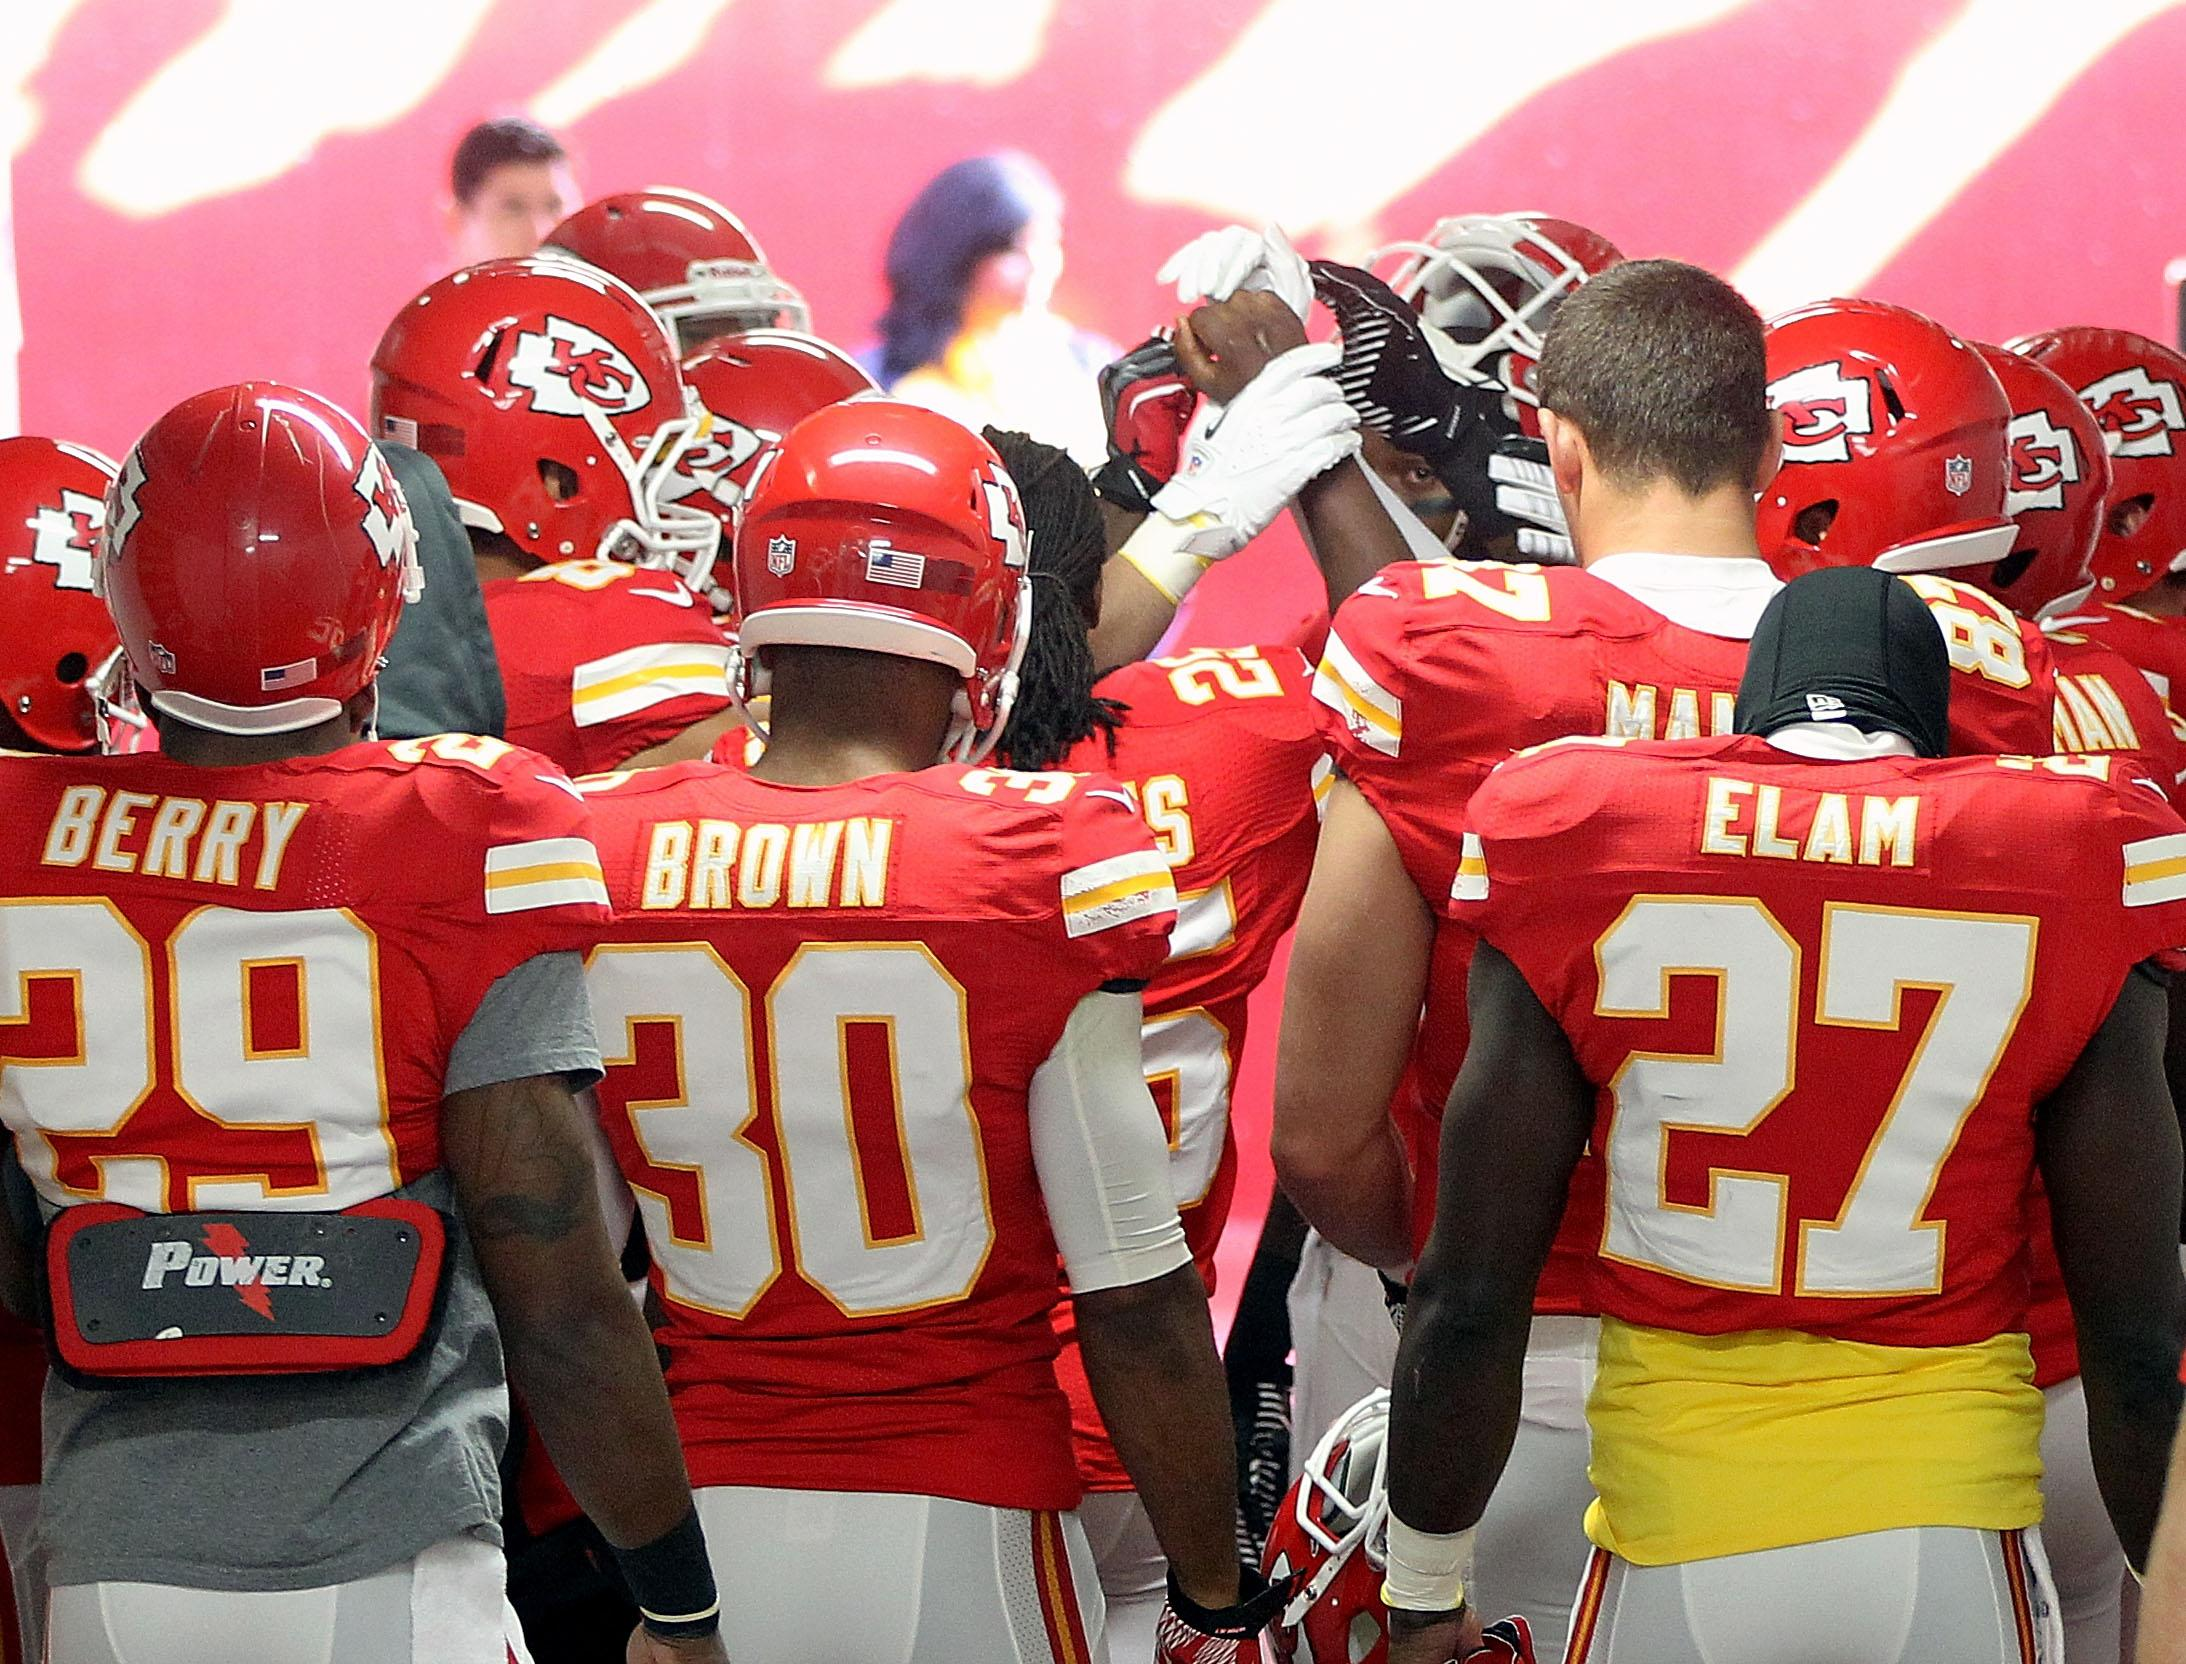 KANSAS CITY, MO - DECEMBER 02: Kansas City Chiefs players huddle in prayer in the tunnel to the field prior to the game against the Carolina Panthers at Arrowhead Stadium on December 2, 2012 in Kansas City, Missouri. (Photo by Jamie Squire/Getty Images)